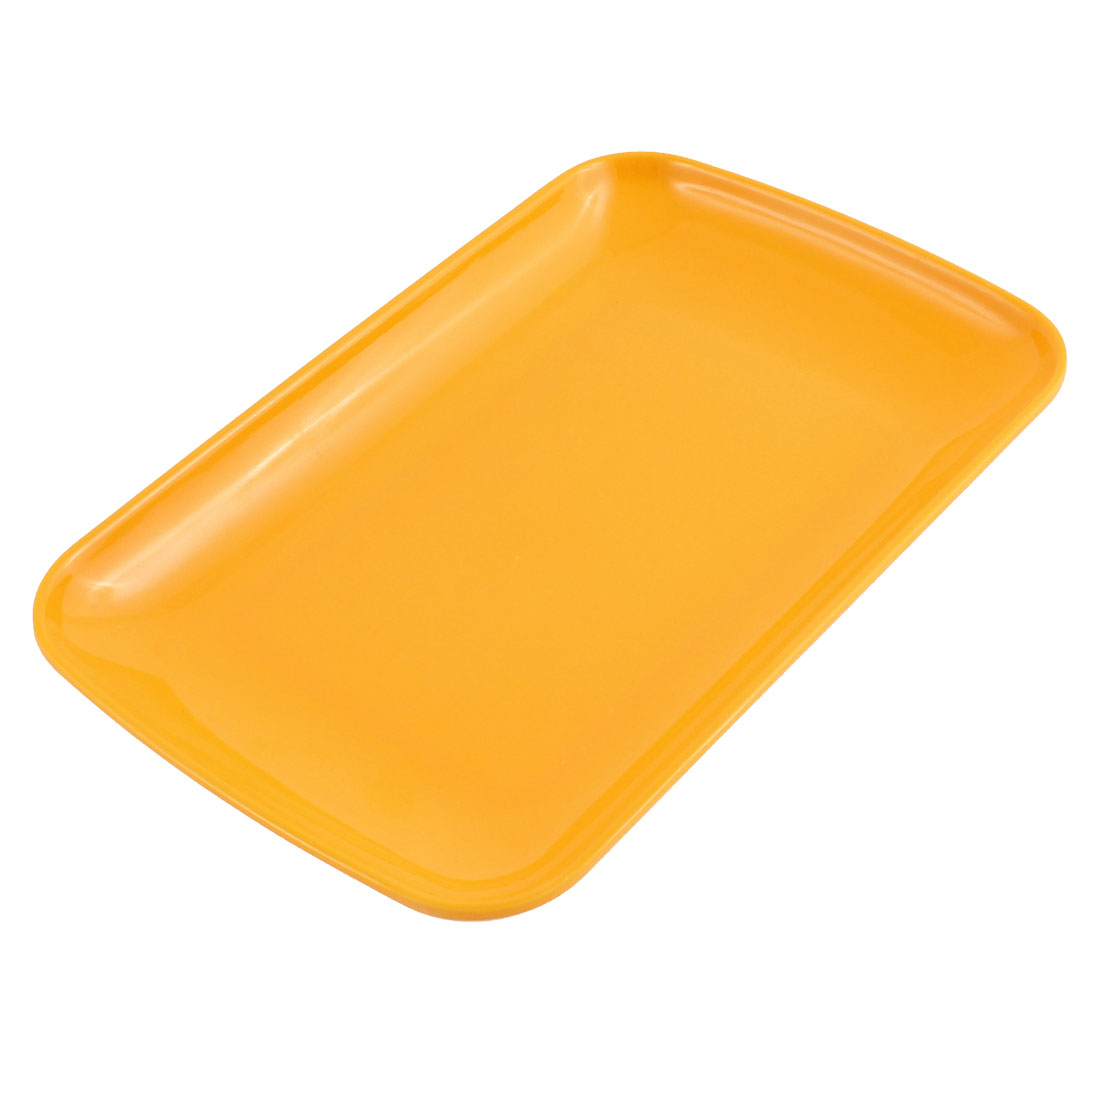 "Plastic Rectangle Shaped Dinner Dessert Vermicelli Snack Plate Dish Orange 9.5"" x 6"""